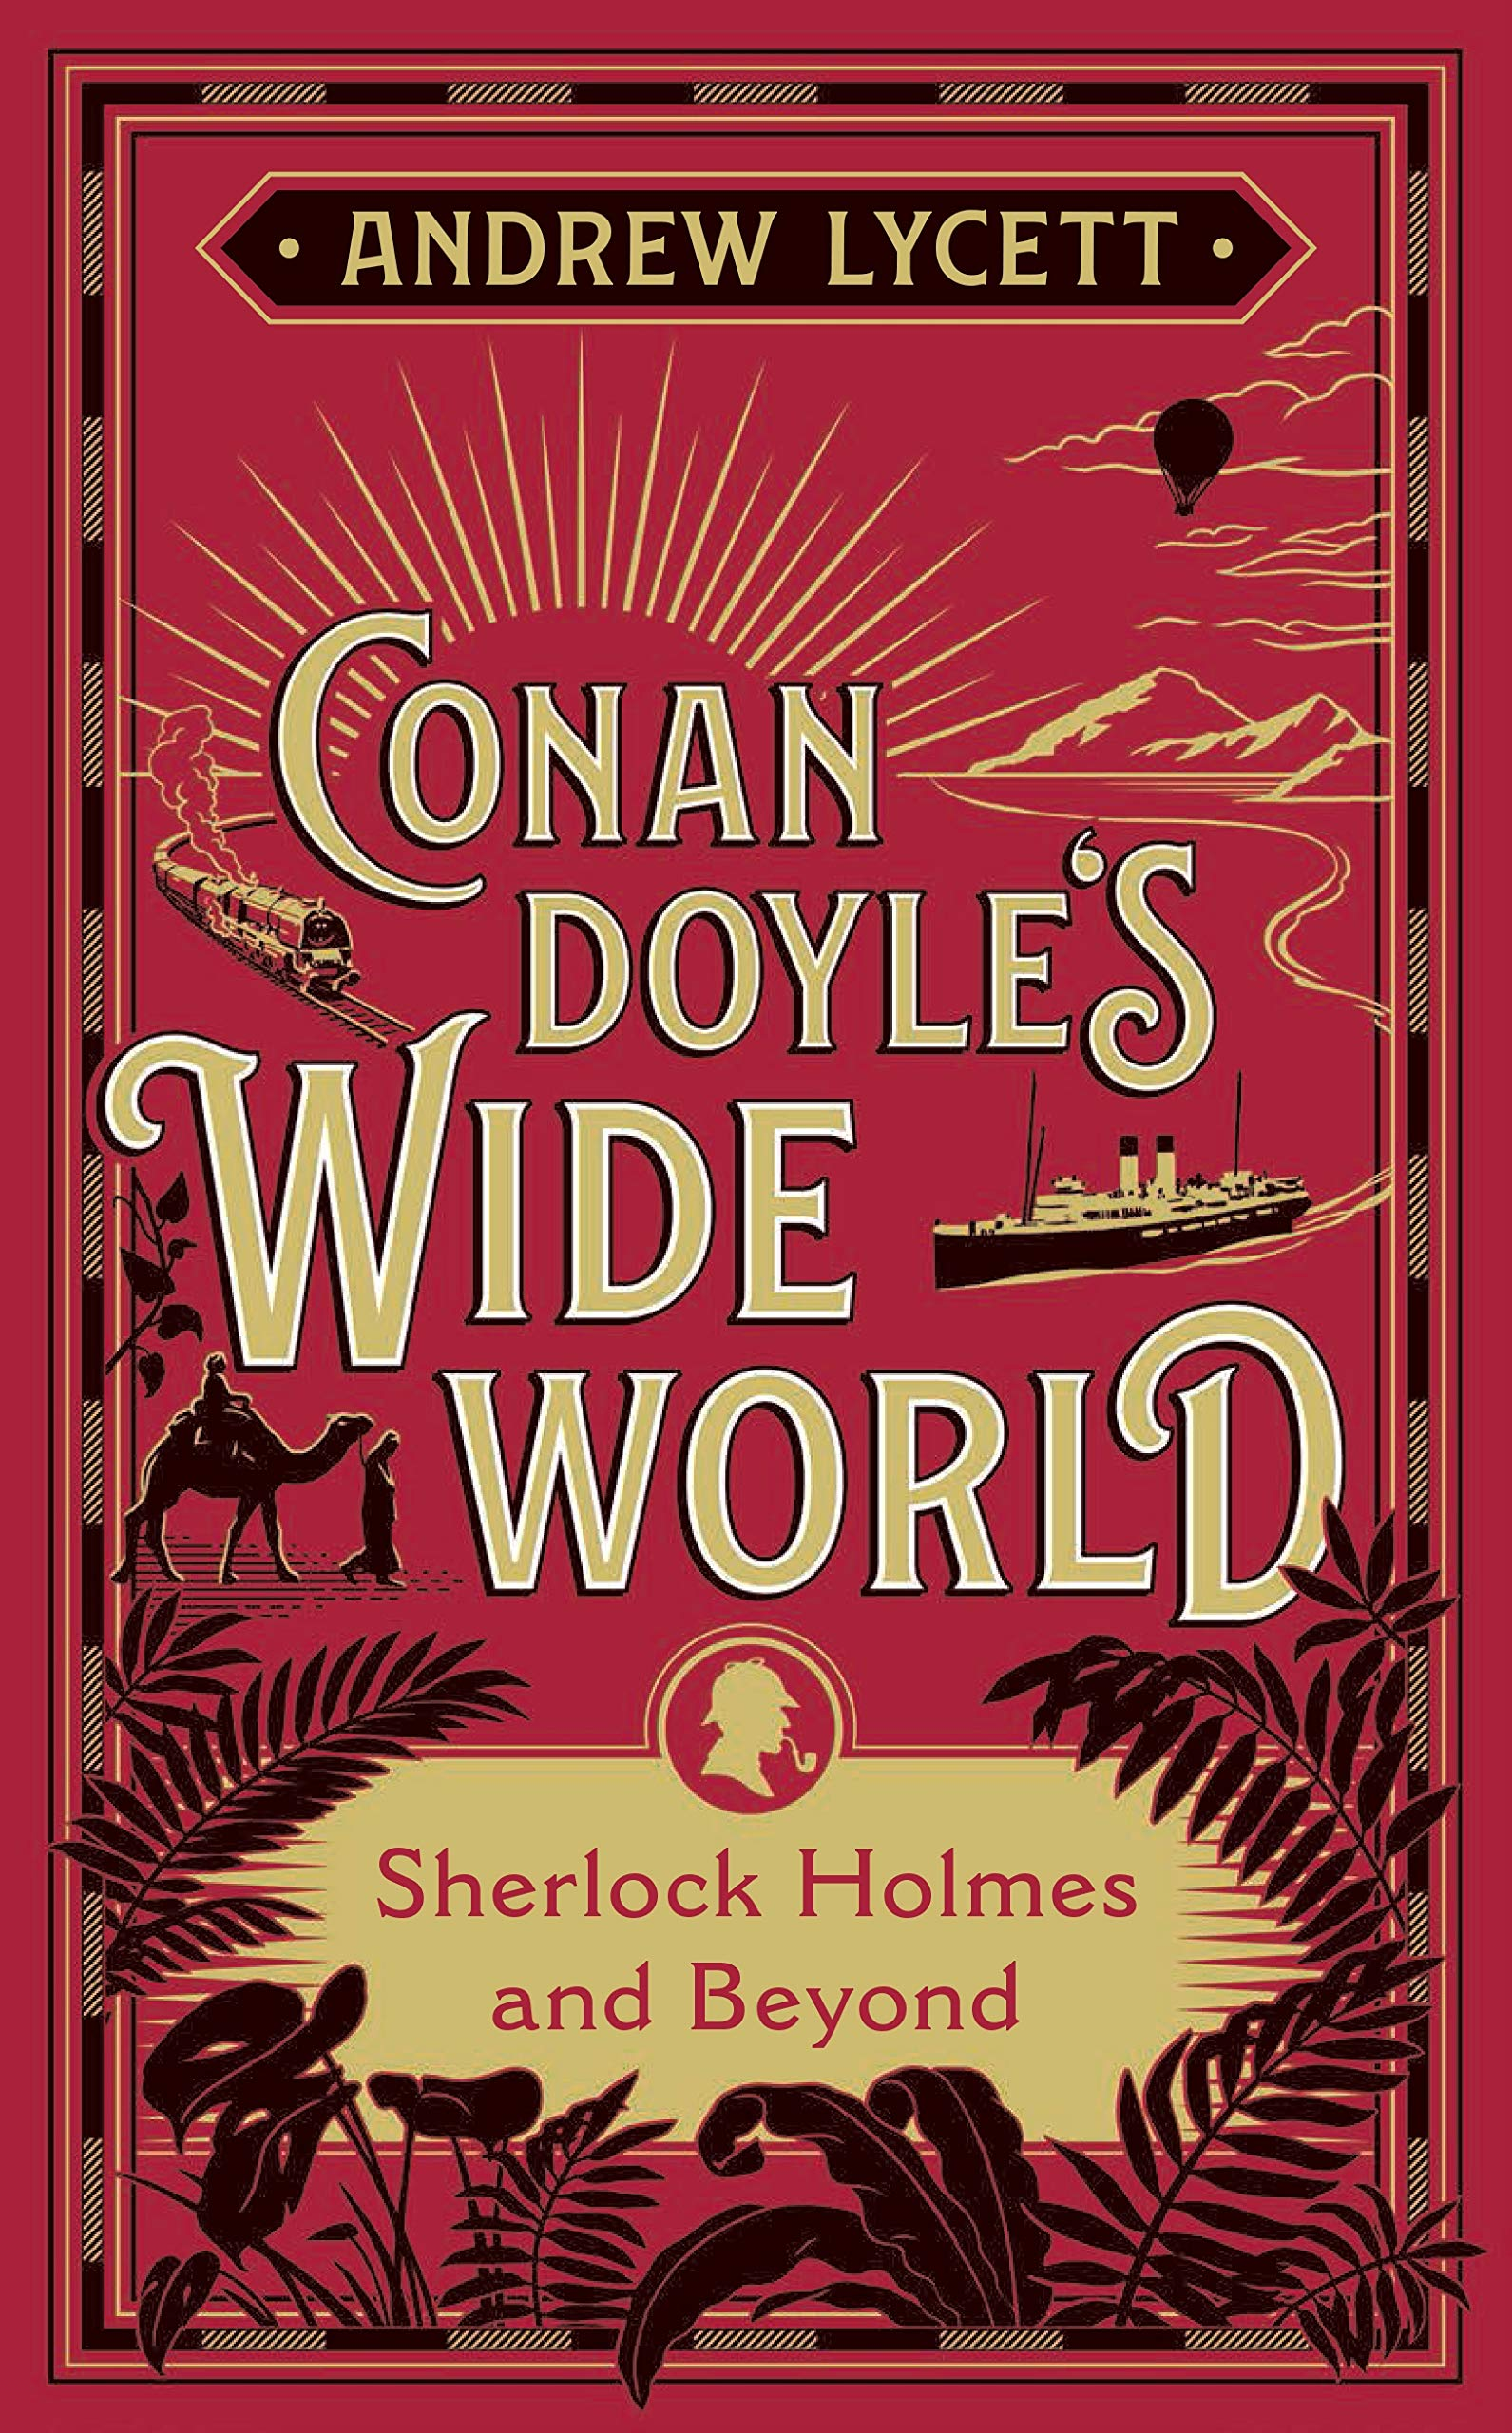 Conan Doyle's wide world : Sherlock Holmes and beyond Lycett, Andrew author.